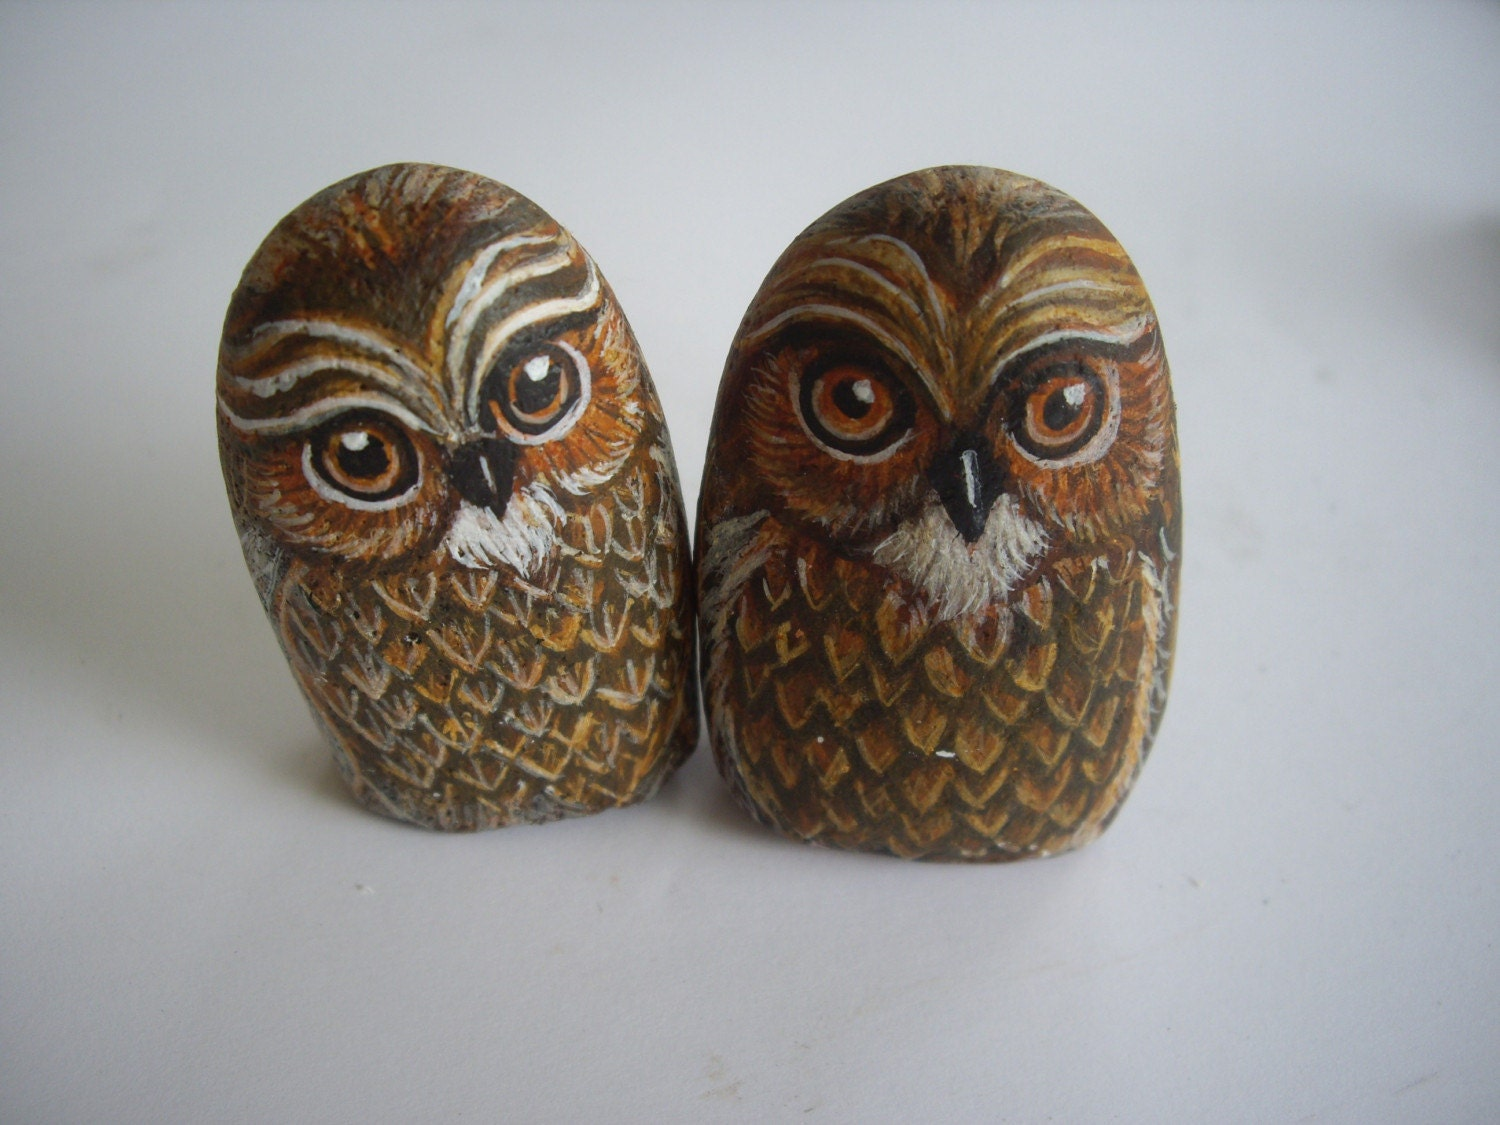 ON SALE A pair of lovely owls - was USD30